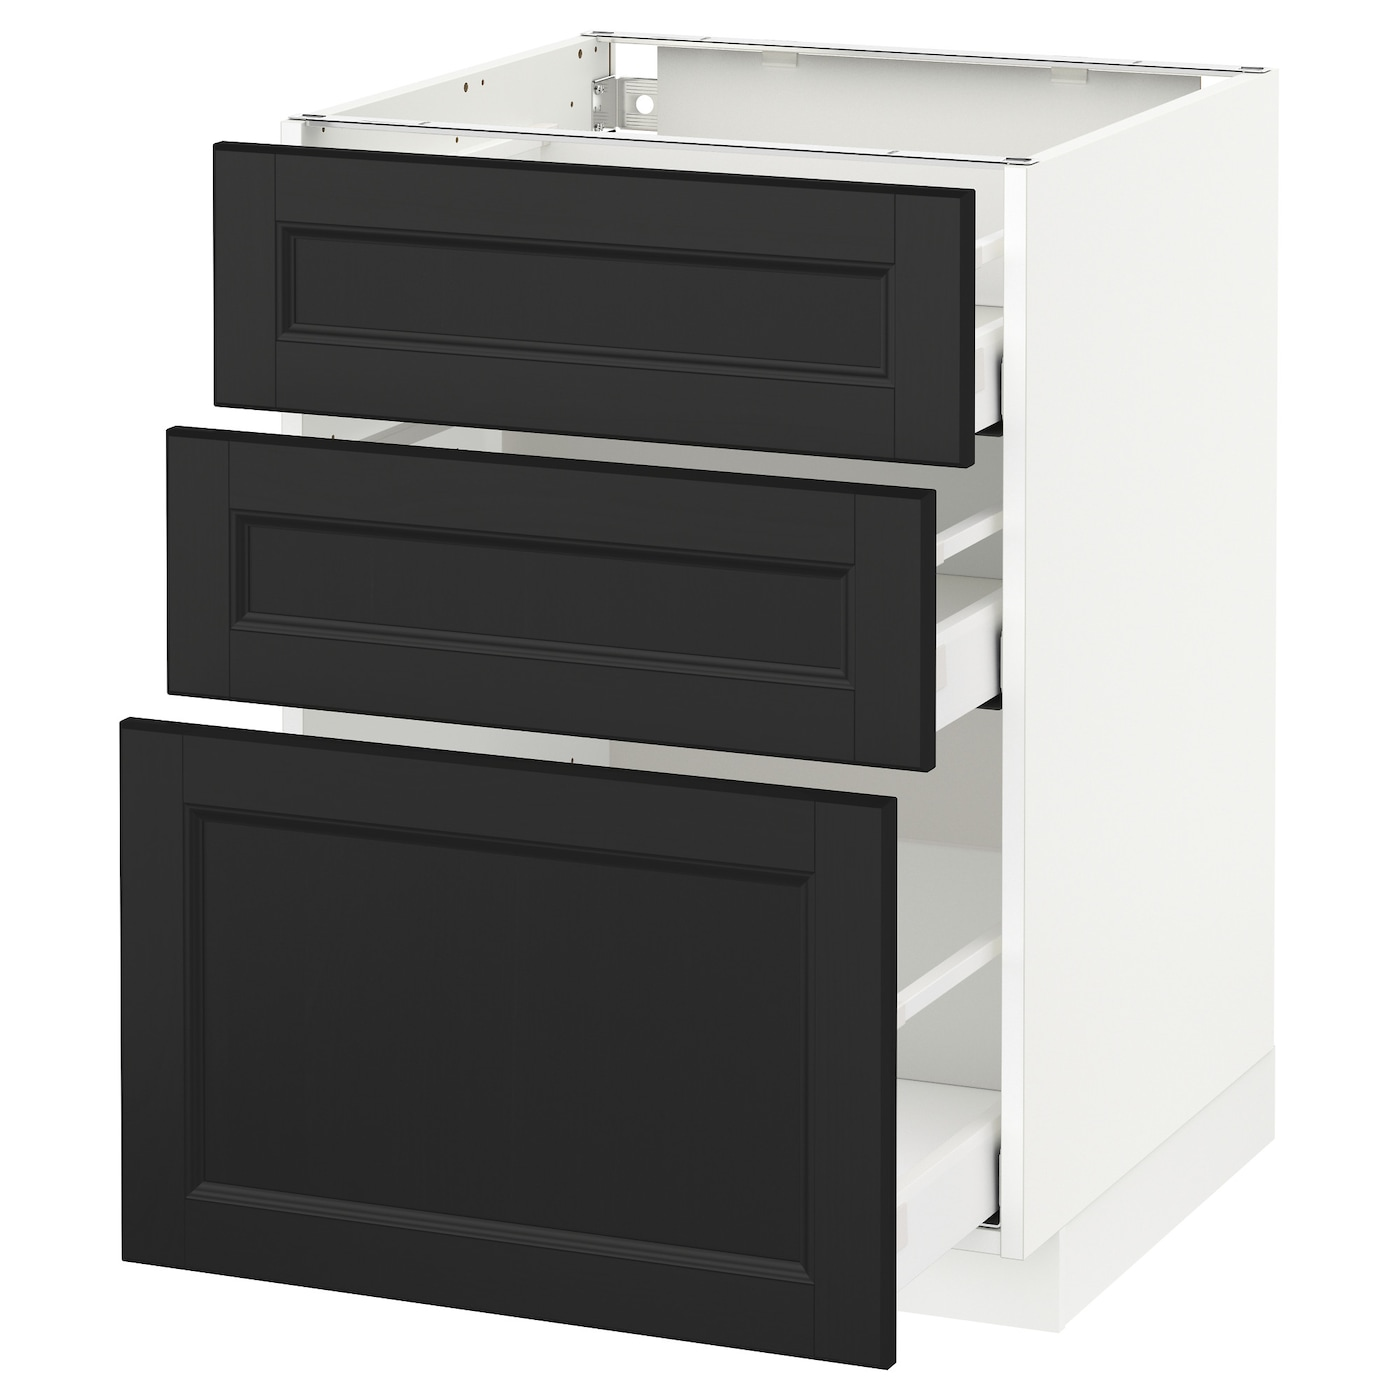 METOD/MAXIMERA Base Cabinet With 3 Drawers White/laxarby Black-brown 60x60 Cm